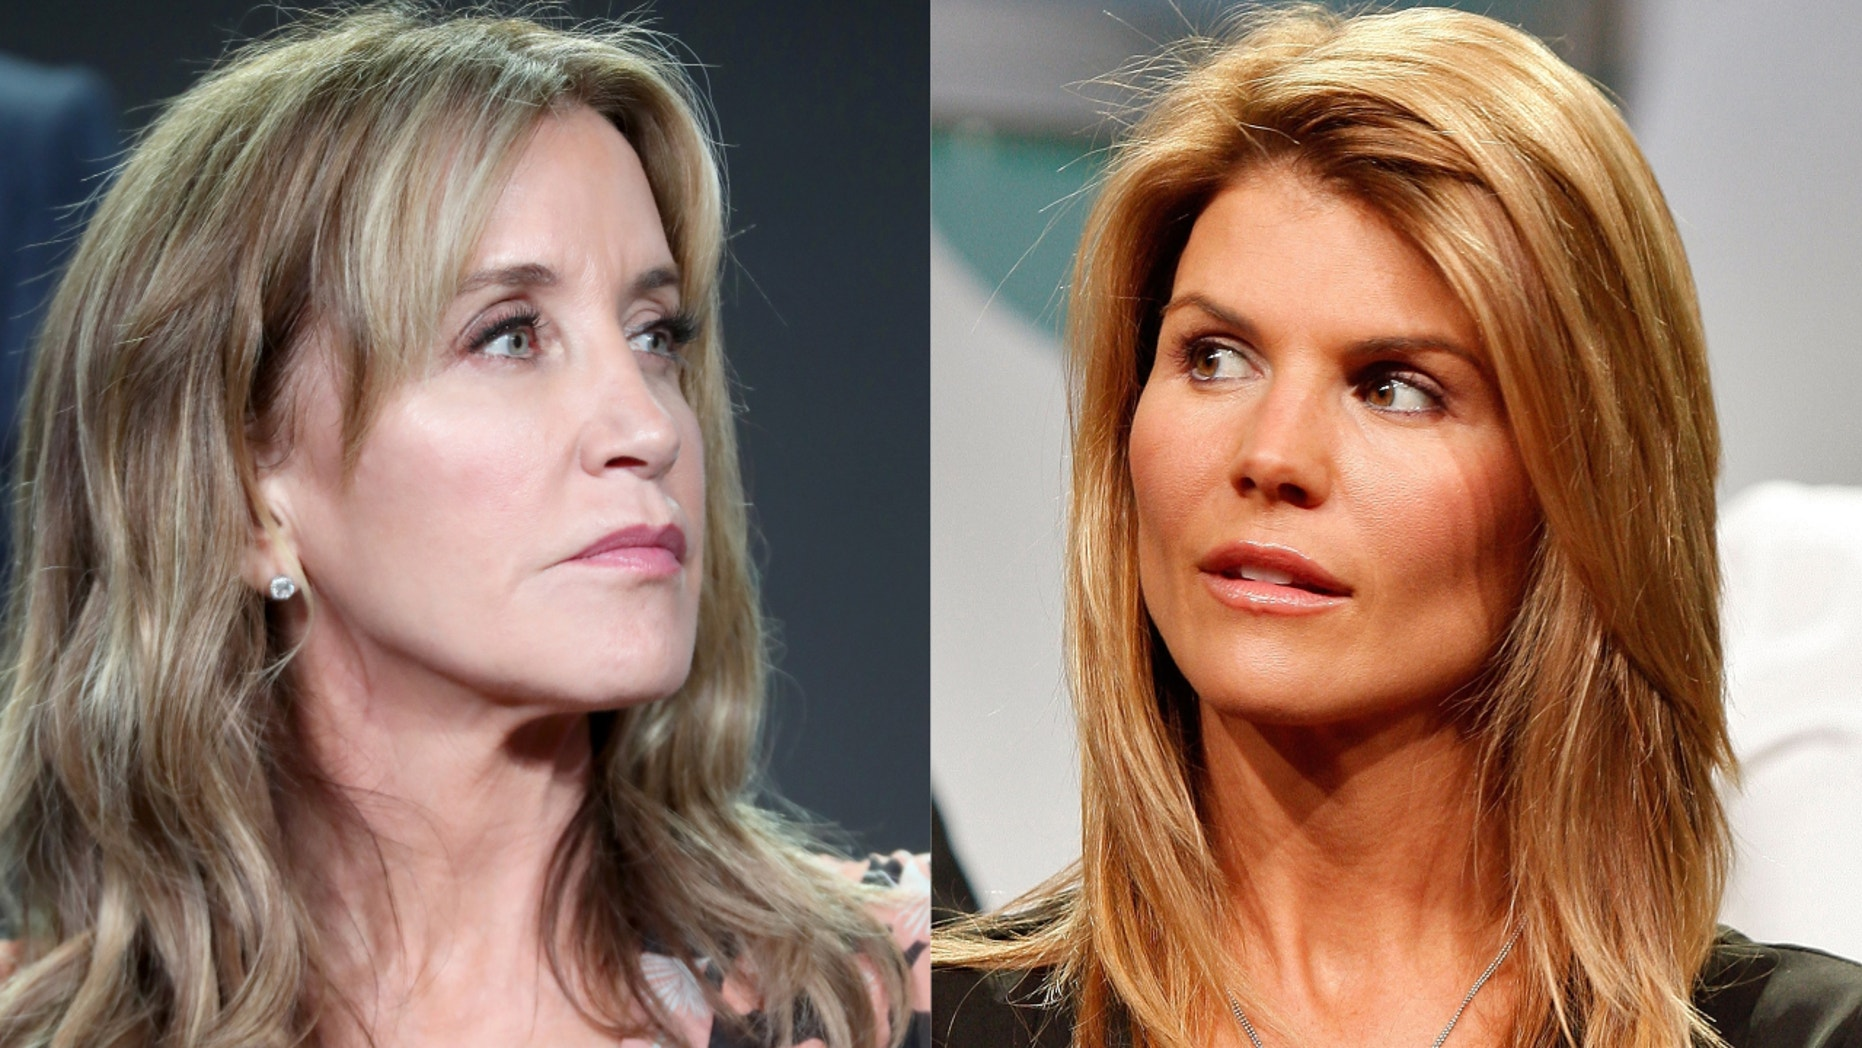 Felicity Huffman, left, and Lori Loughlin, right, were among those charged in an alleged college admissions bribery scam.